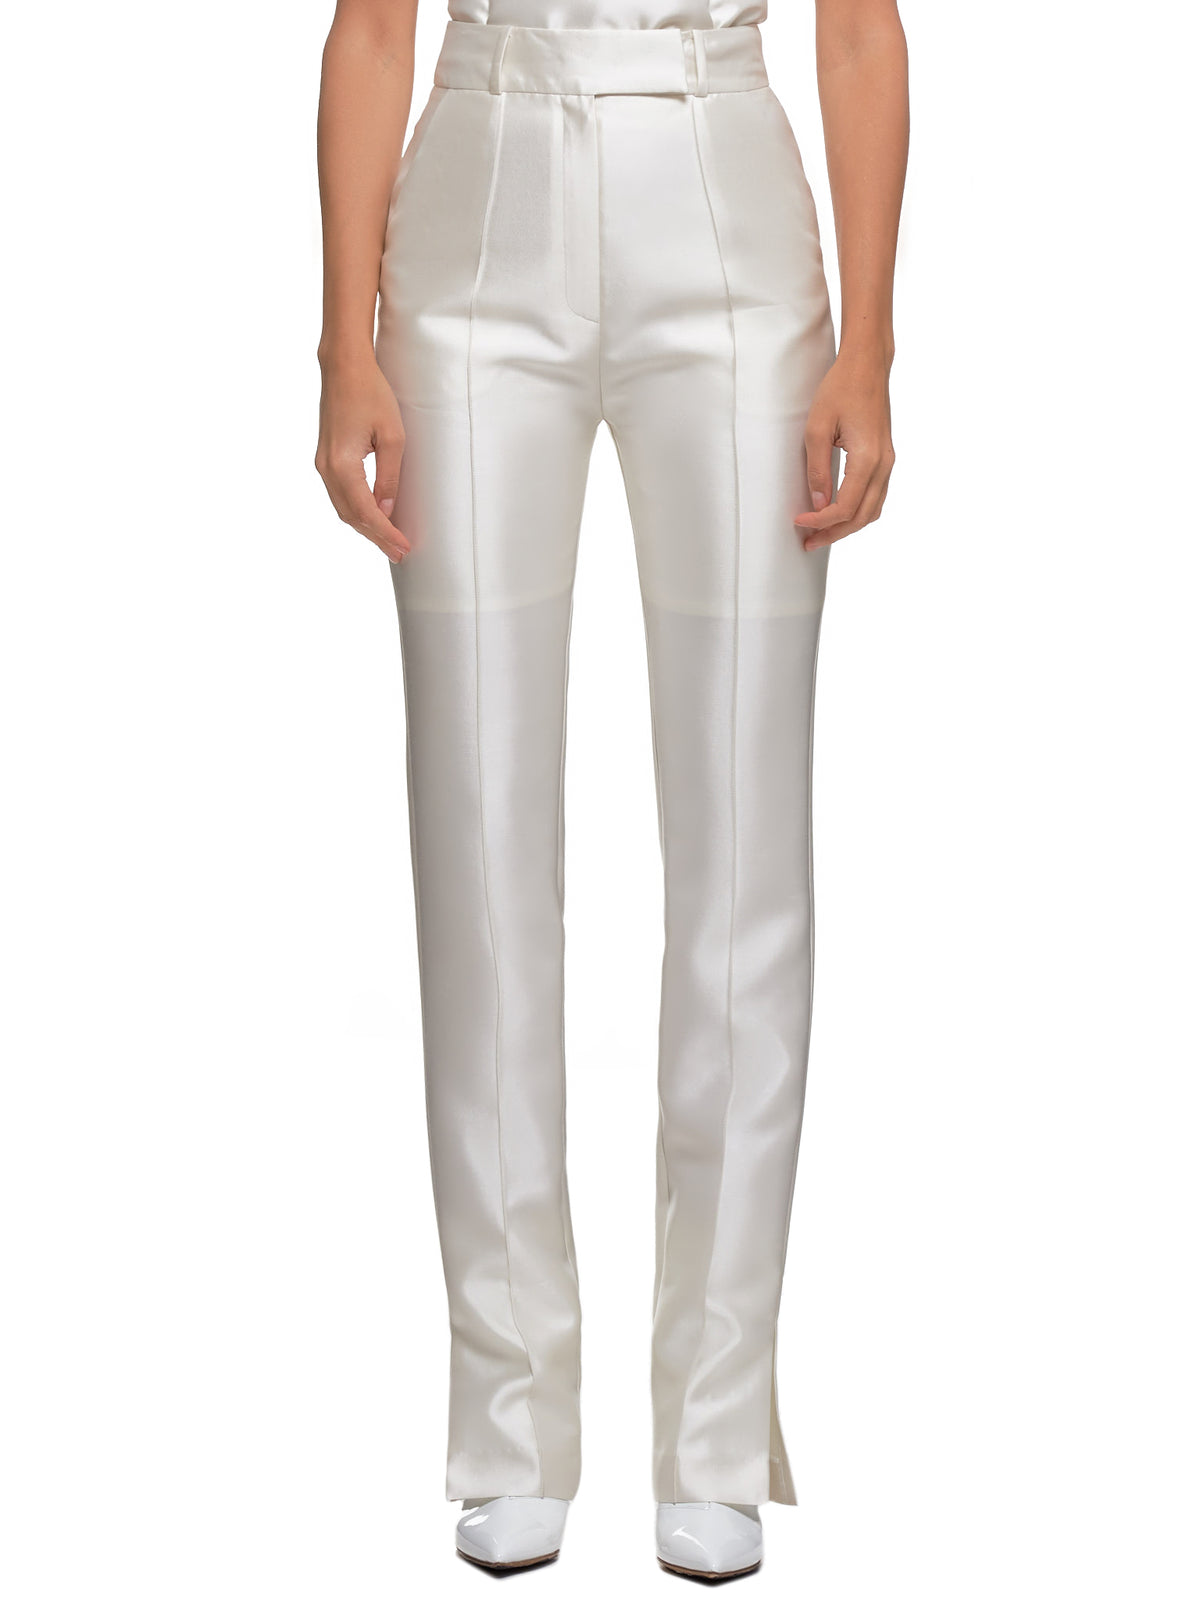 Satin Trousers (FW19C-PT01-WHITE)